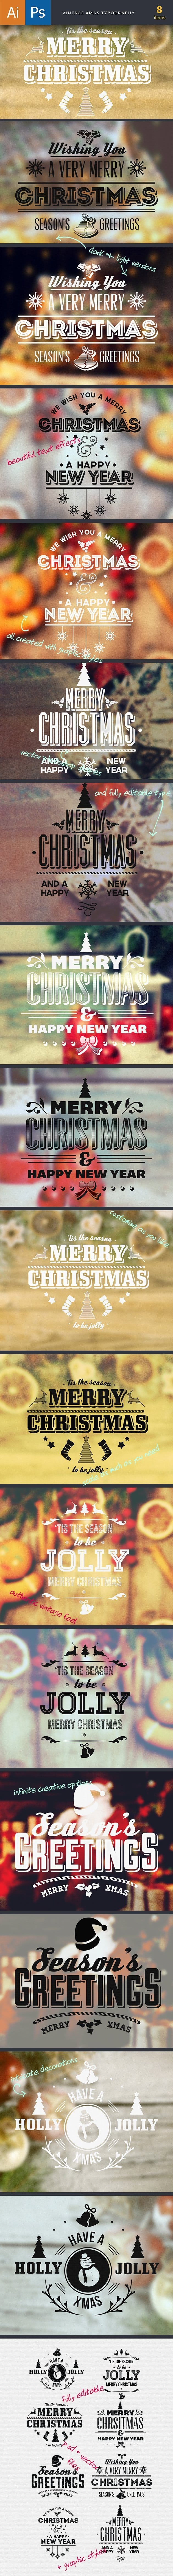 Vintage Xmas Typography preview holiday large